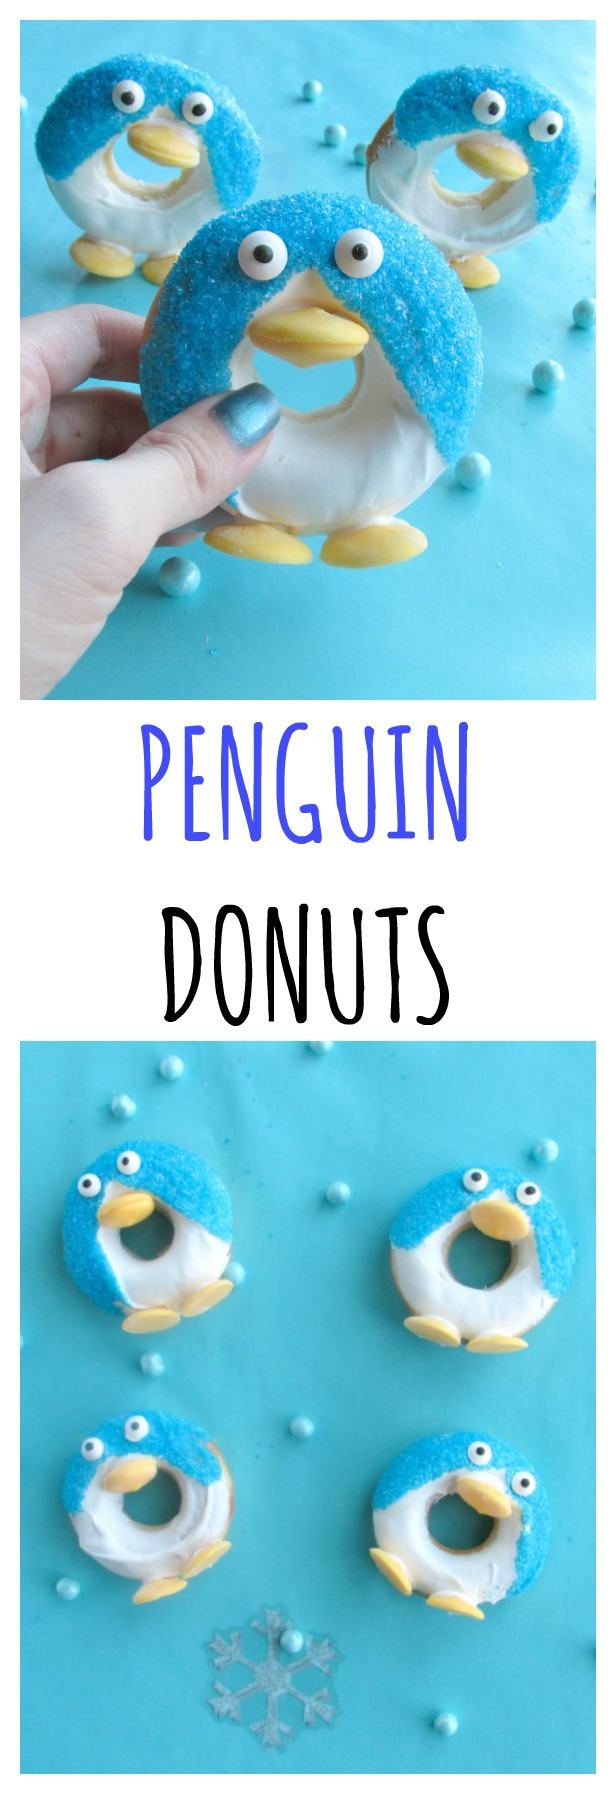 penguin-donuts-how-to-make-these-adorable-diy-donuts